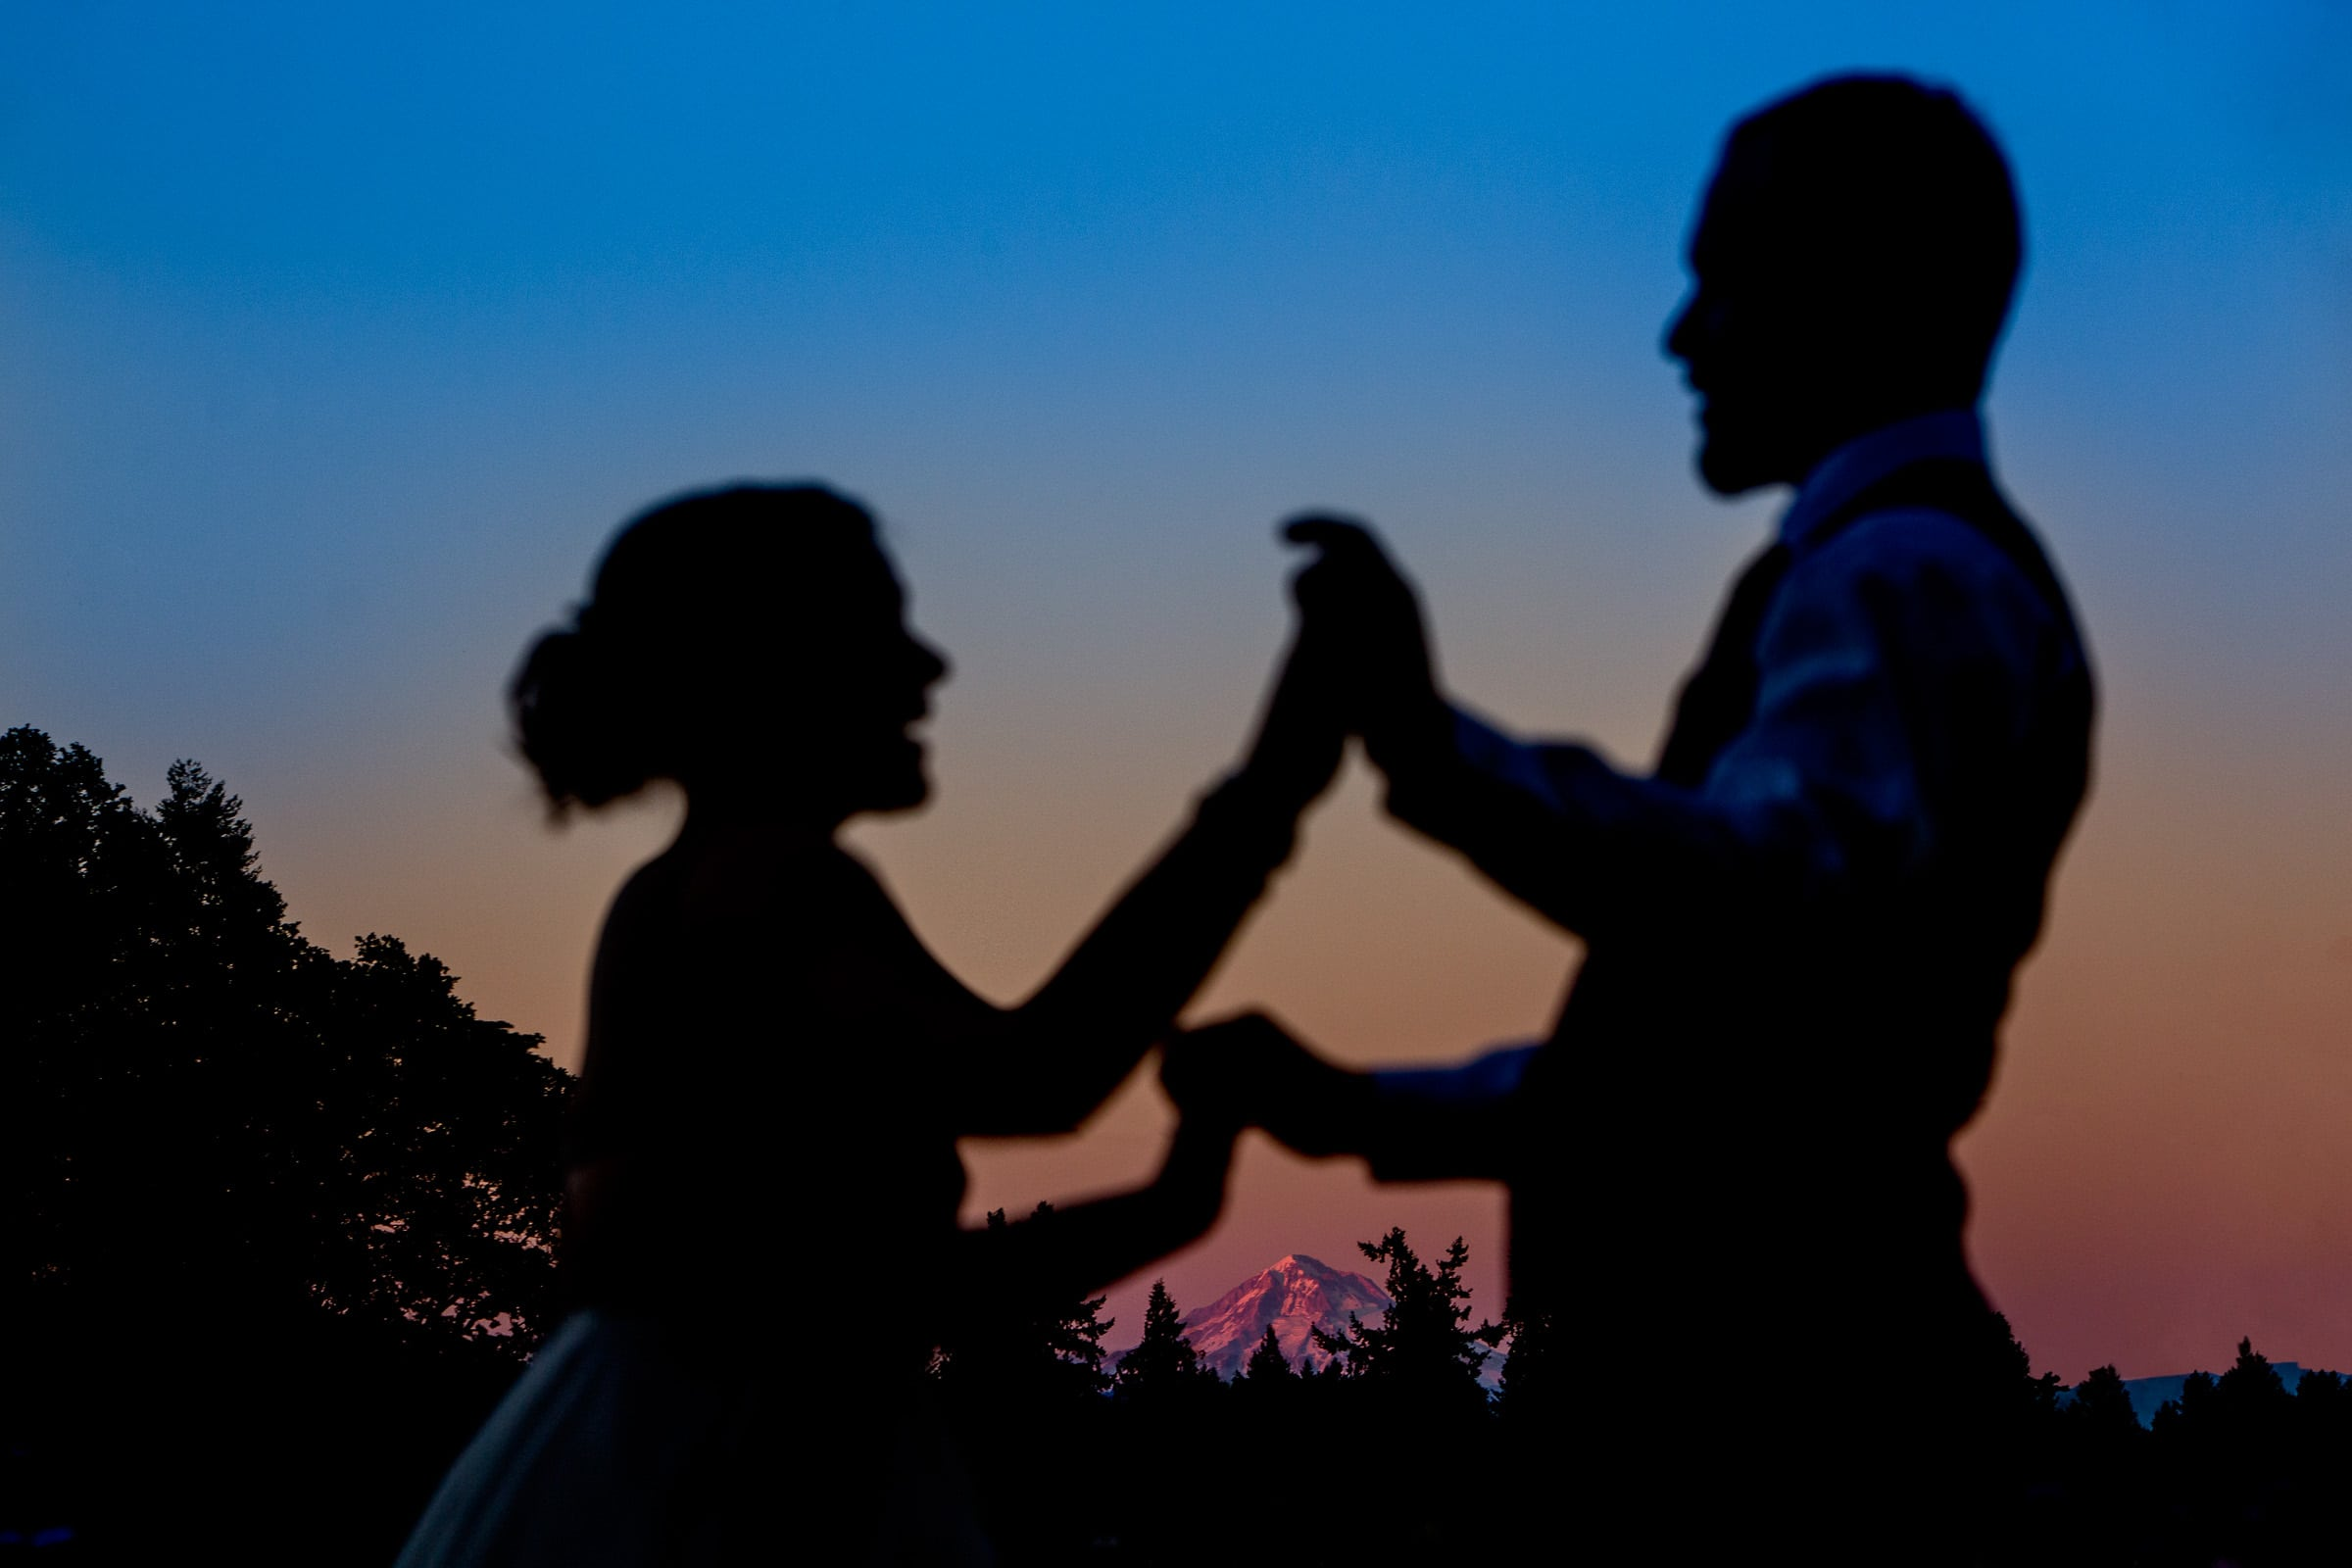 A creative silhouette of a bride and groom dancing with Mt Hood in the distance during their Postlewait's Country wedding located in the heart of the Willamette Valley between Portland and Salem near Aurora, Oregon